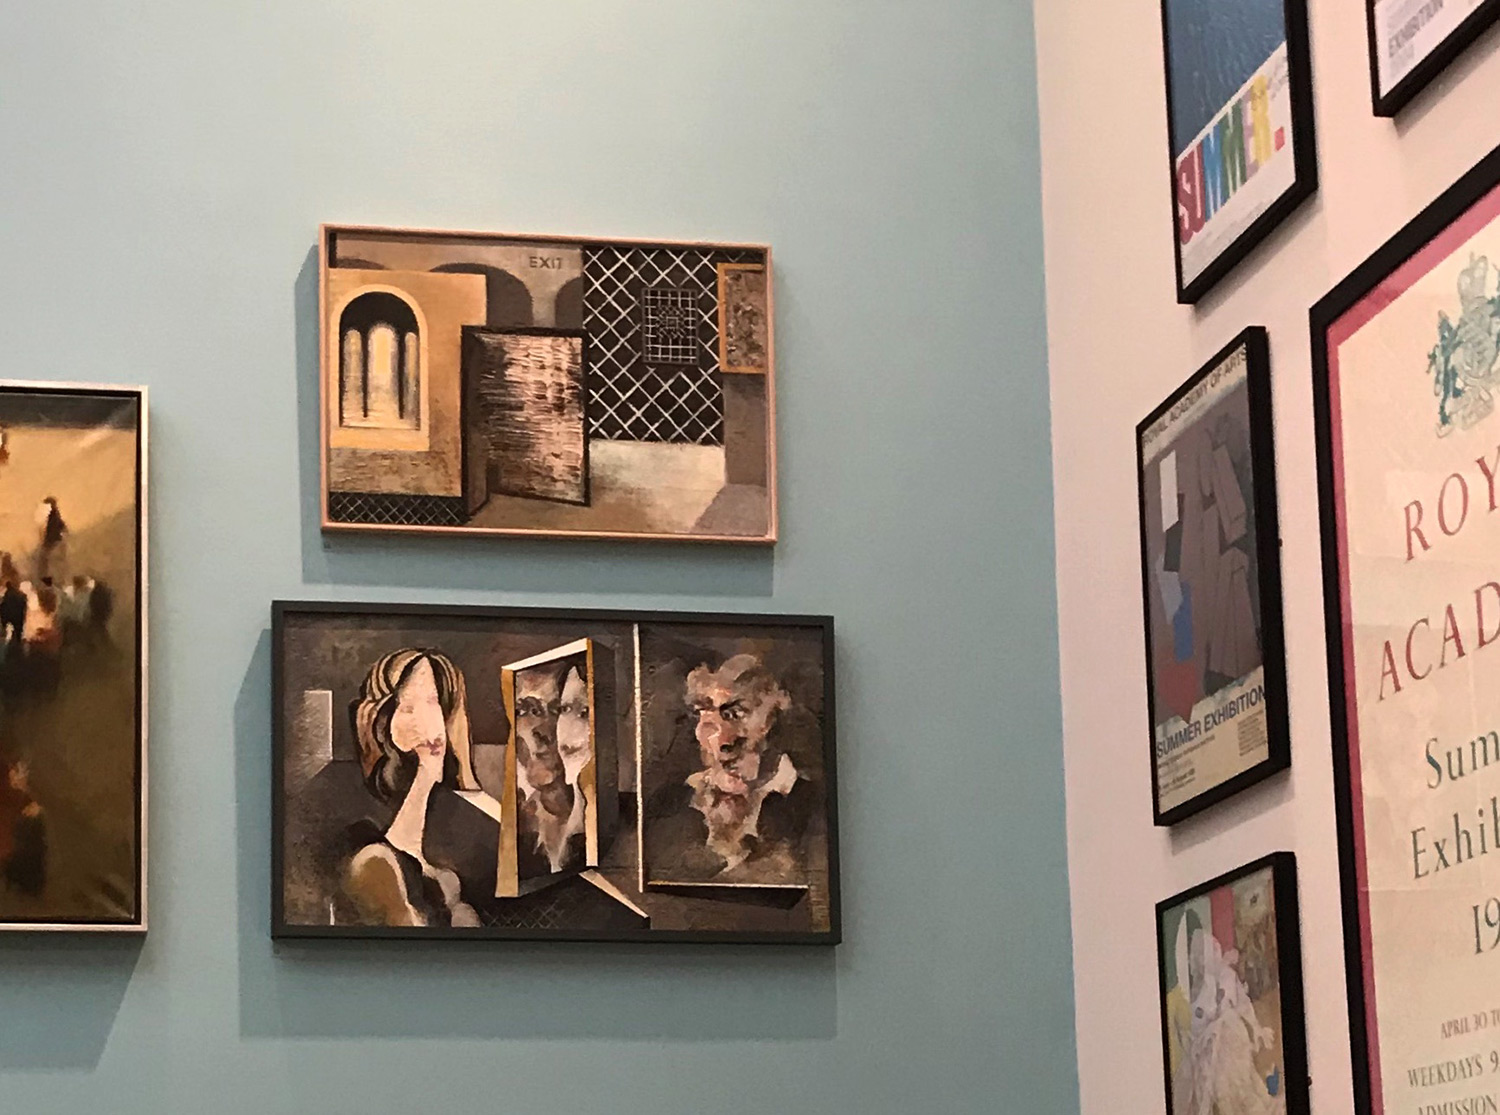 an_impossible_mirror_a_way_out_exhibitions_royal_academy_summer_show_2019_anthony_whishaw_ra.jpg